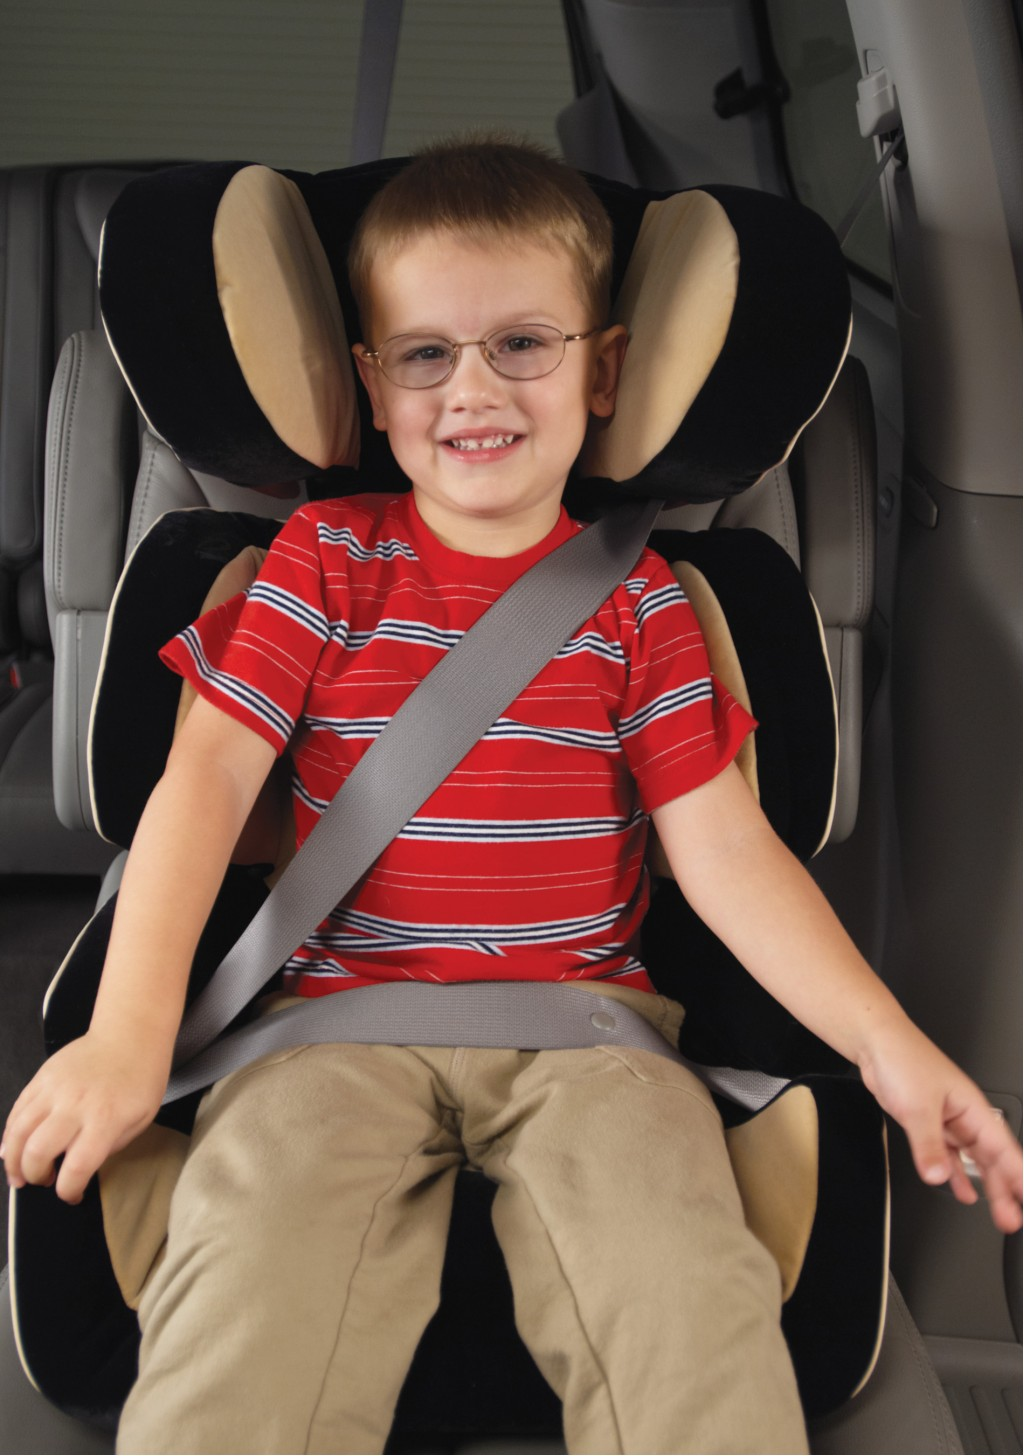 booster seat with good fit  -  IIHS